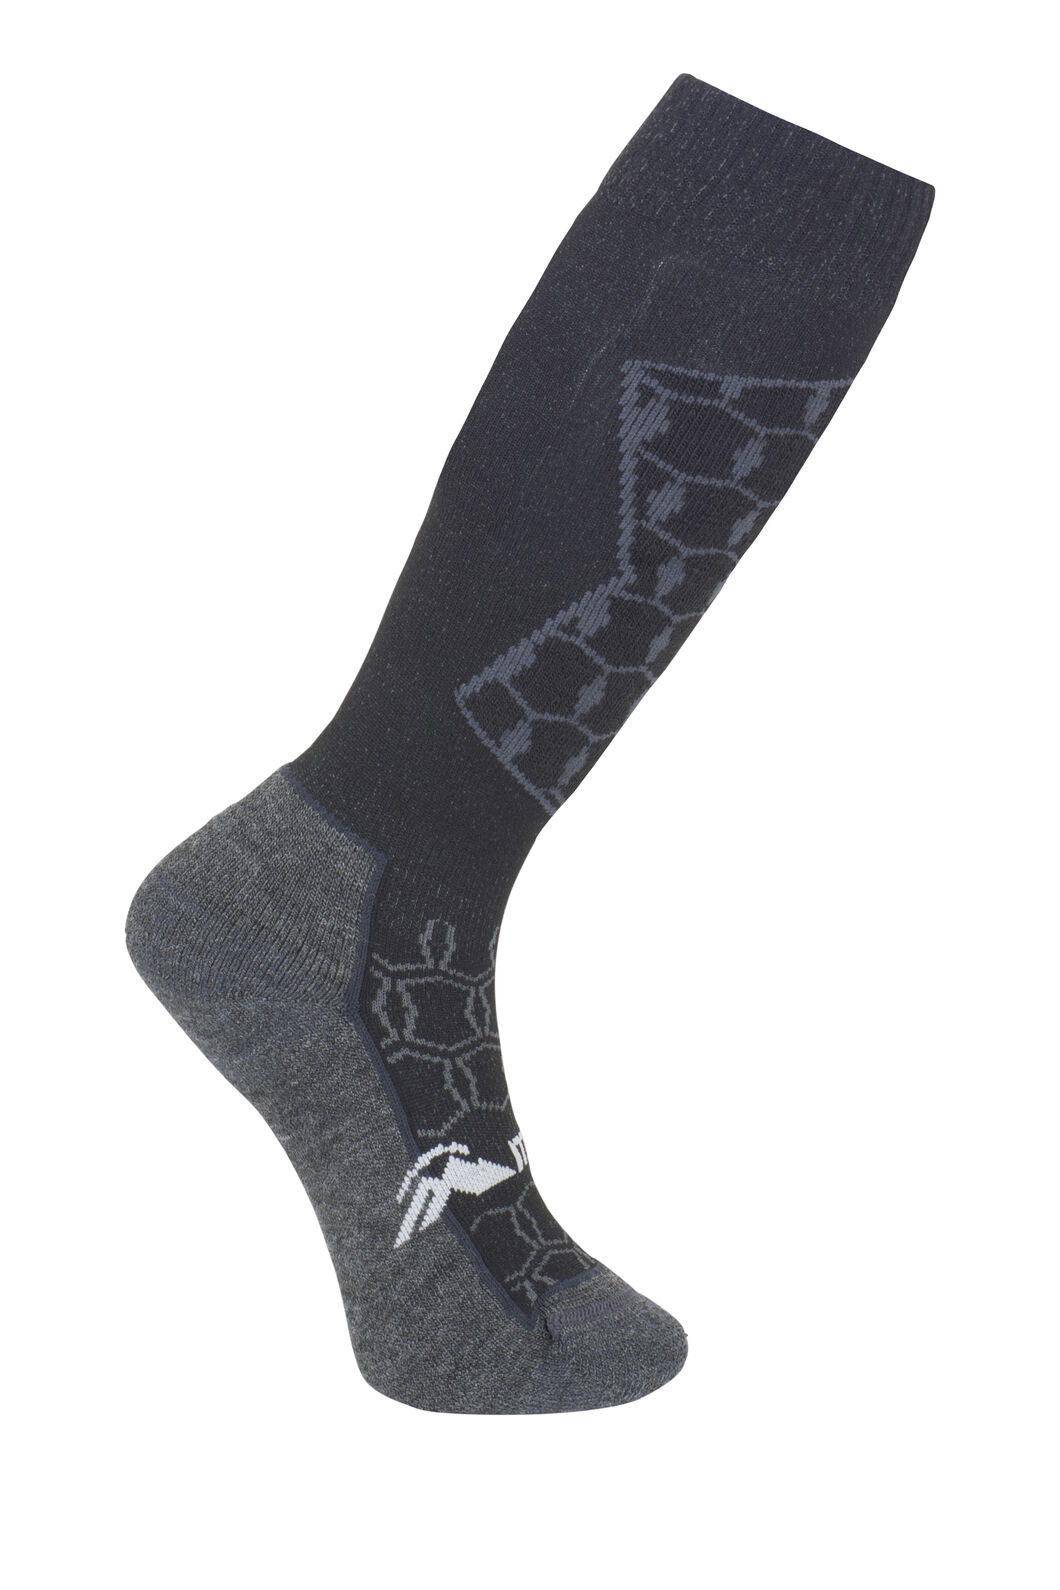 Macpac Tech Ski Sock - Kids', Black/Charcoal, hi-res